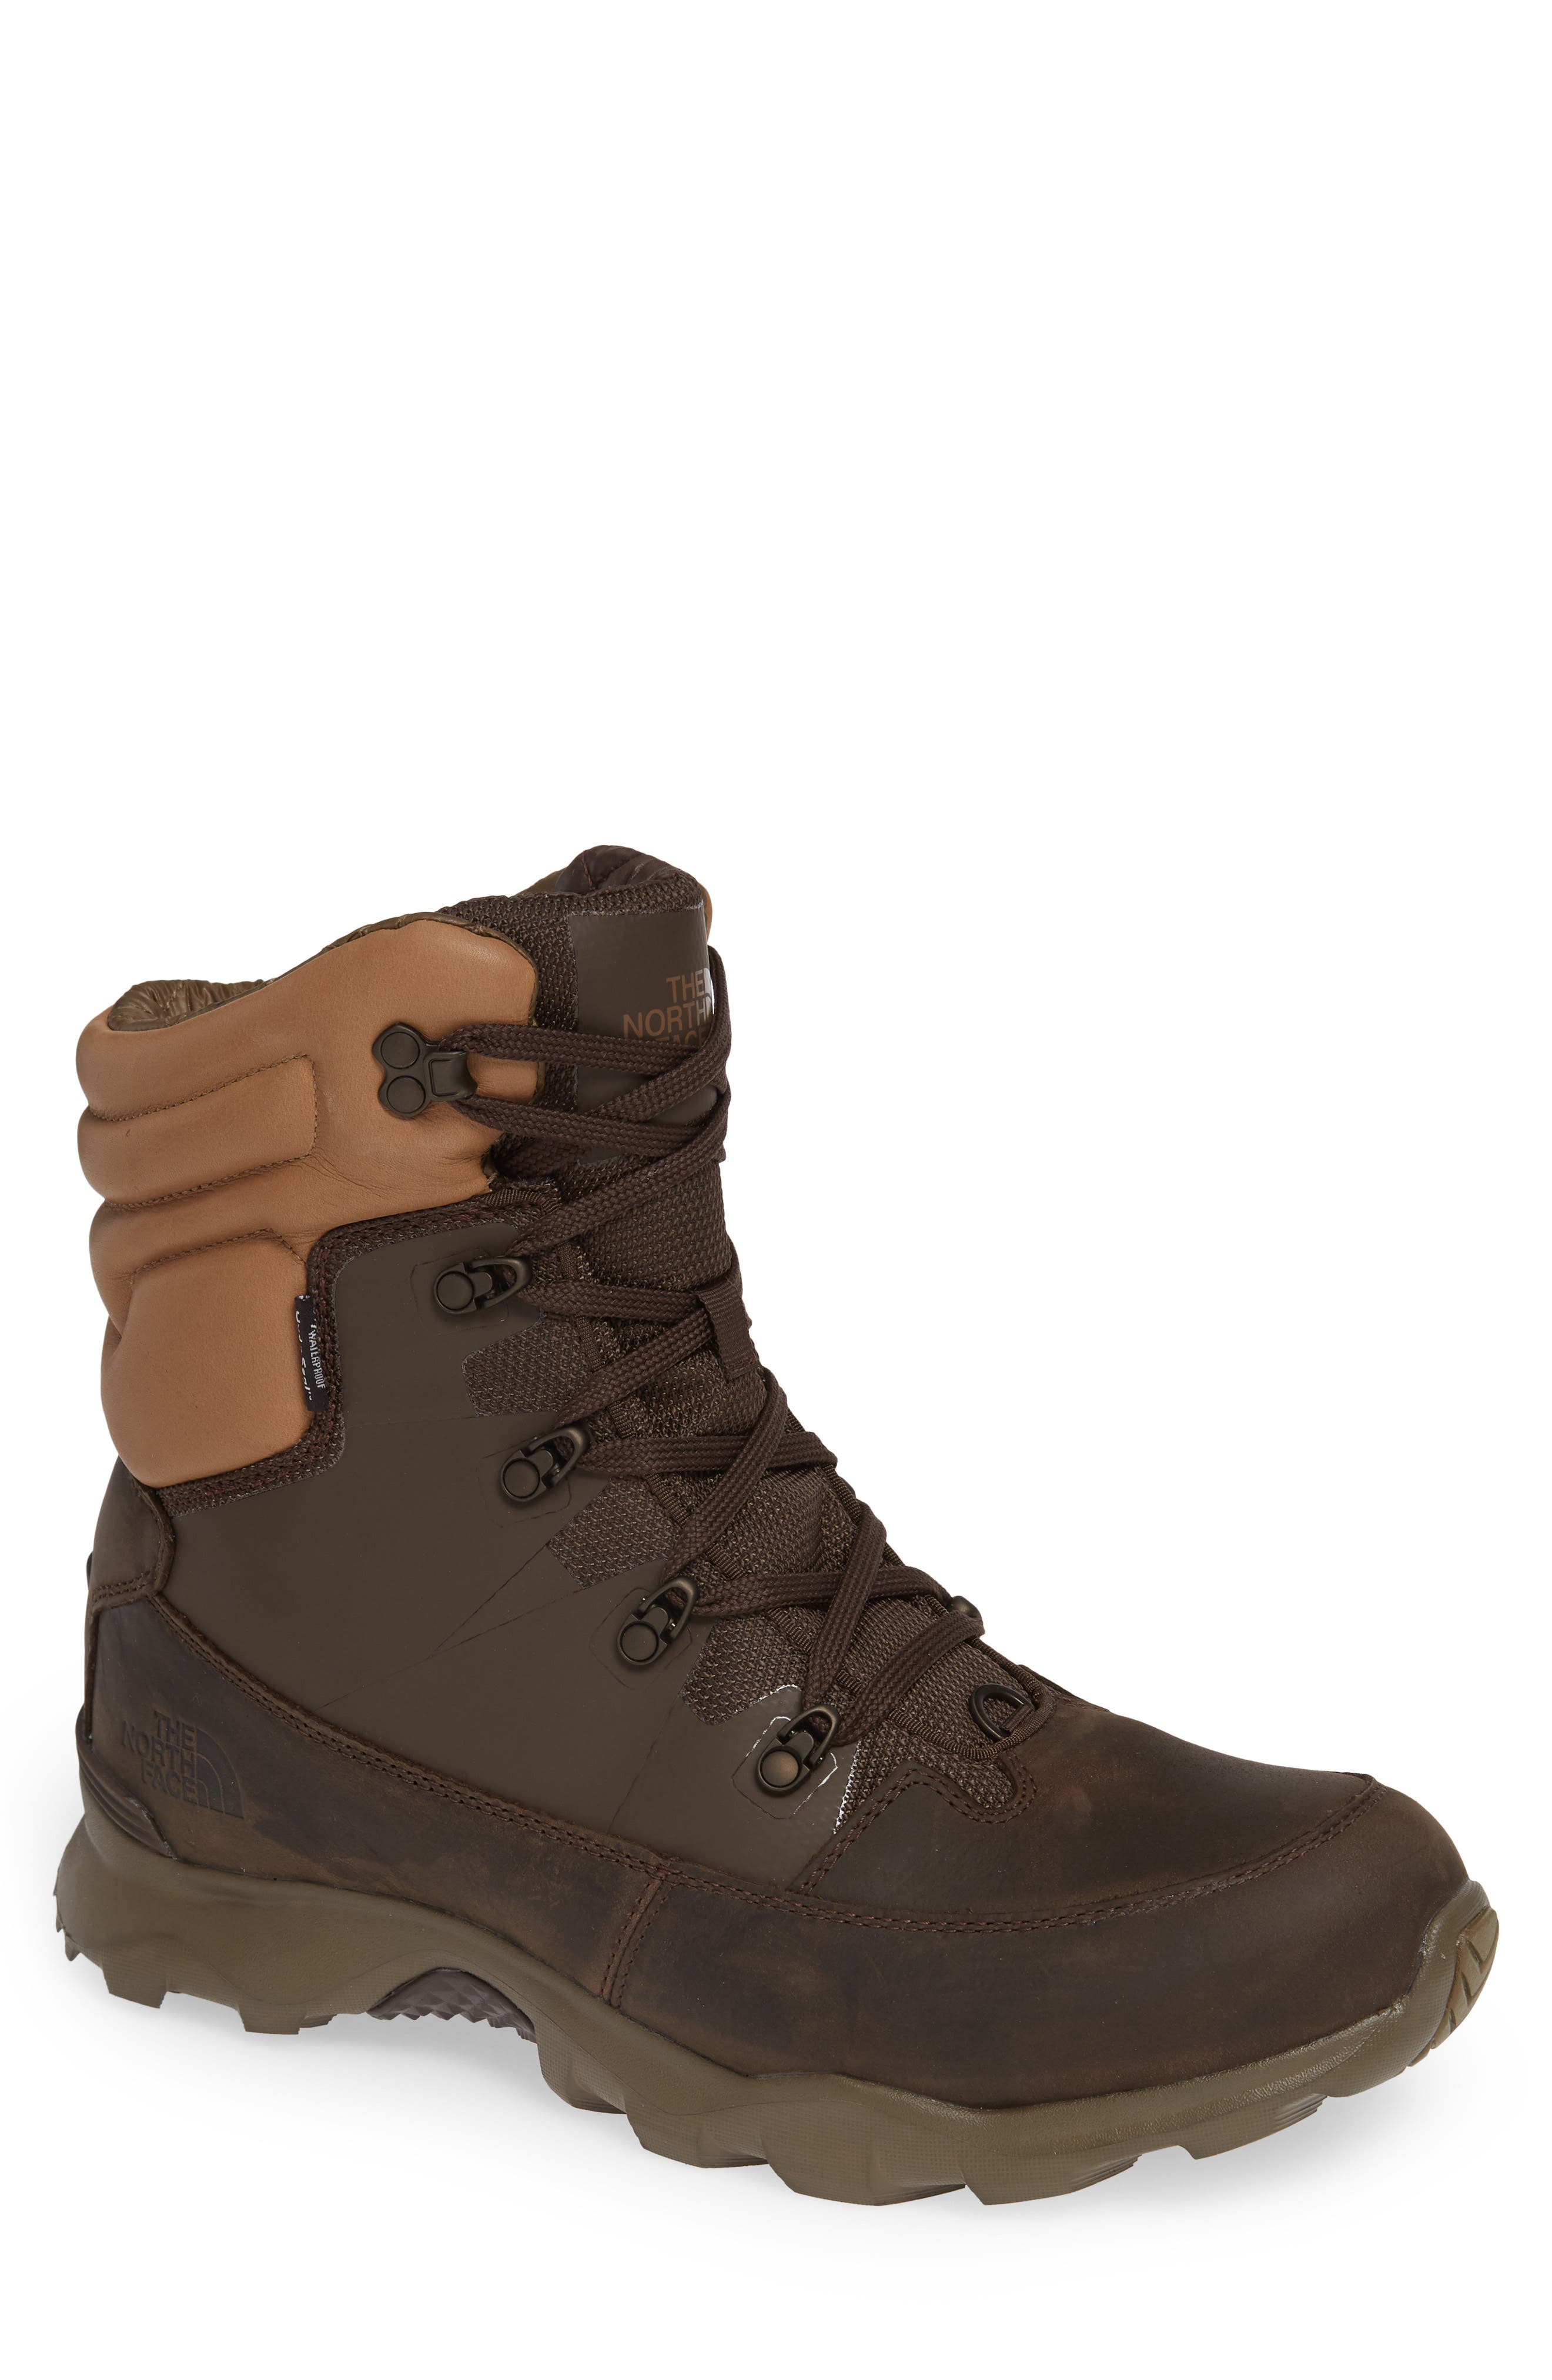 The North Face Thermoball Lifty Snow Waterproof Boot- Brown